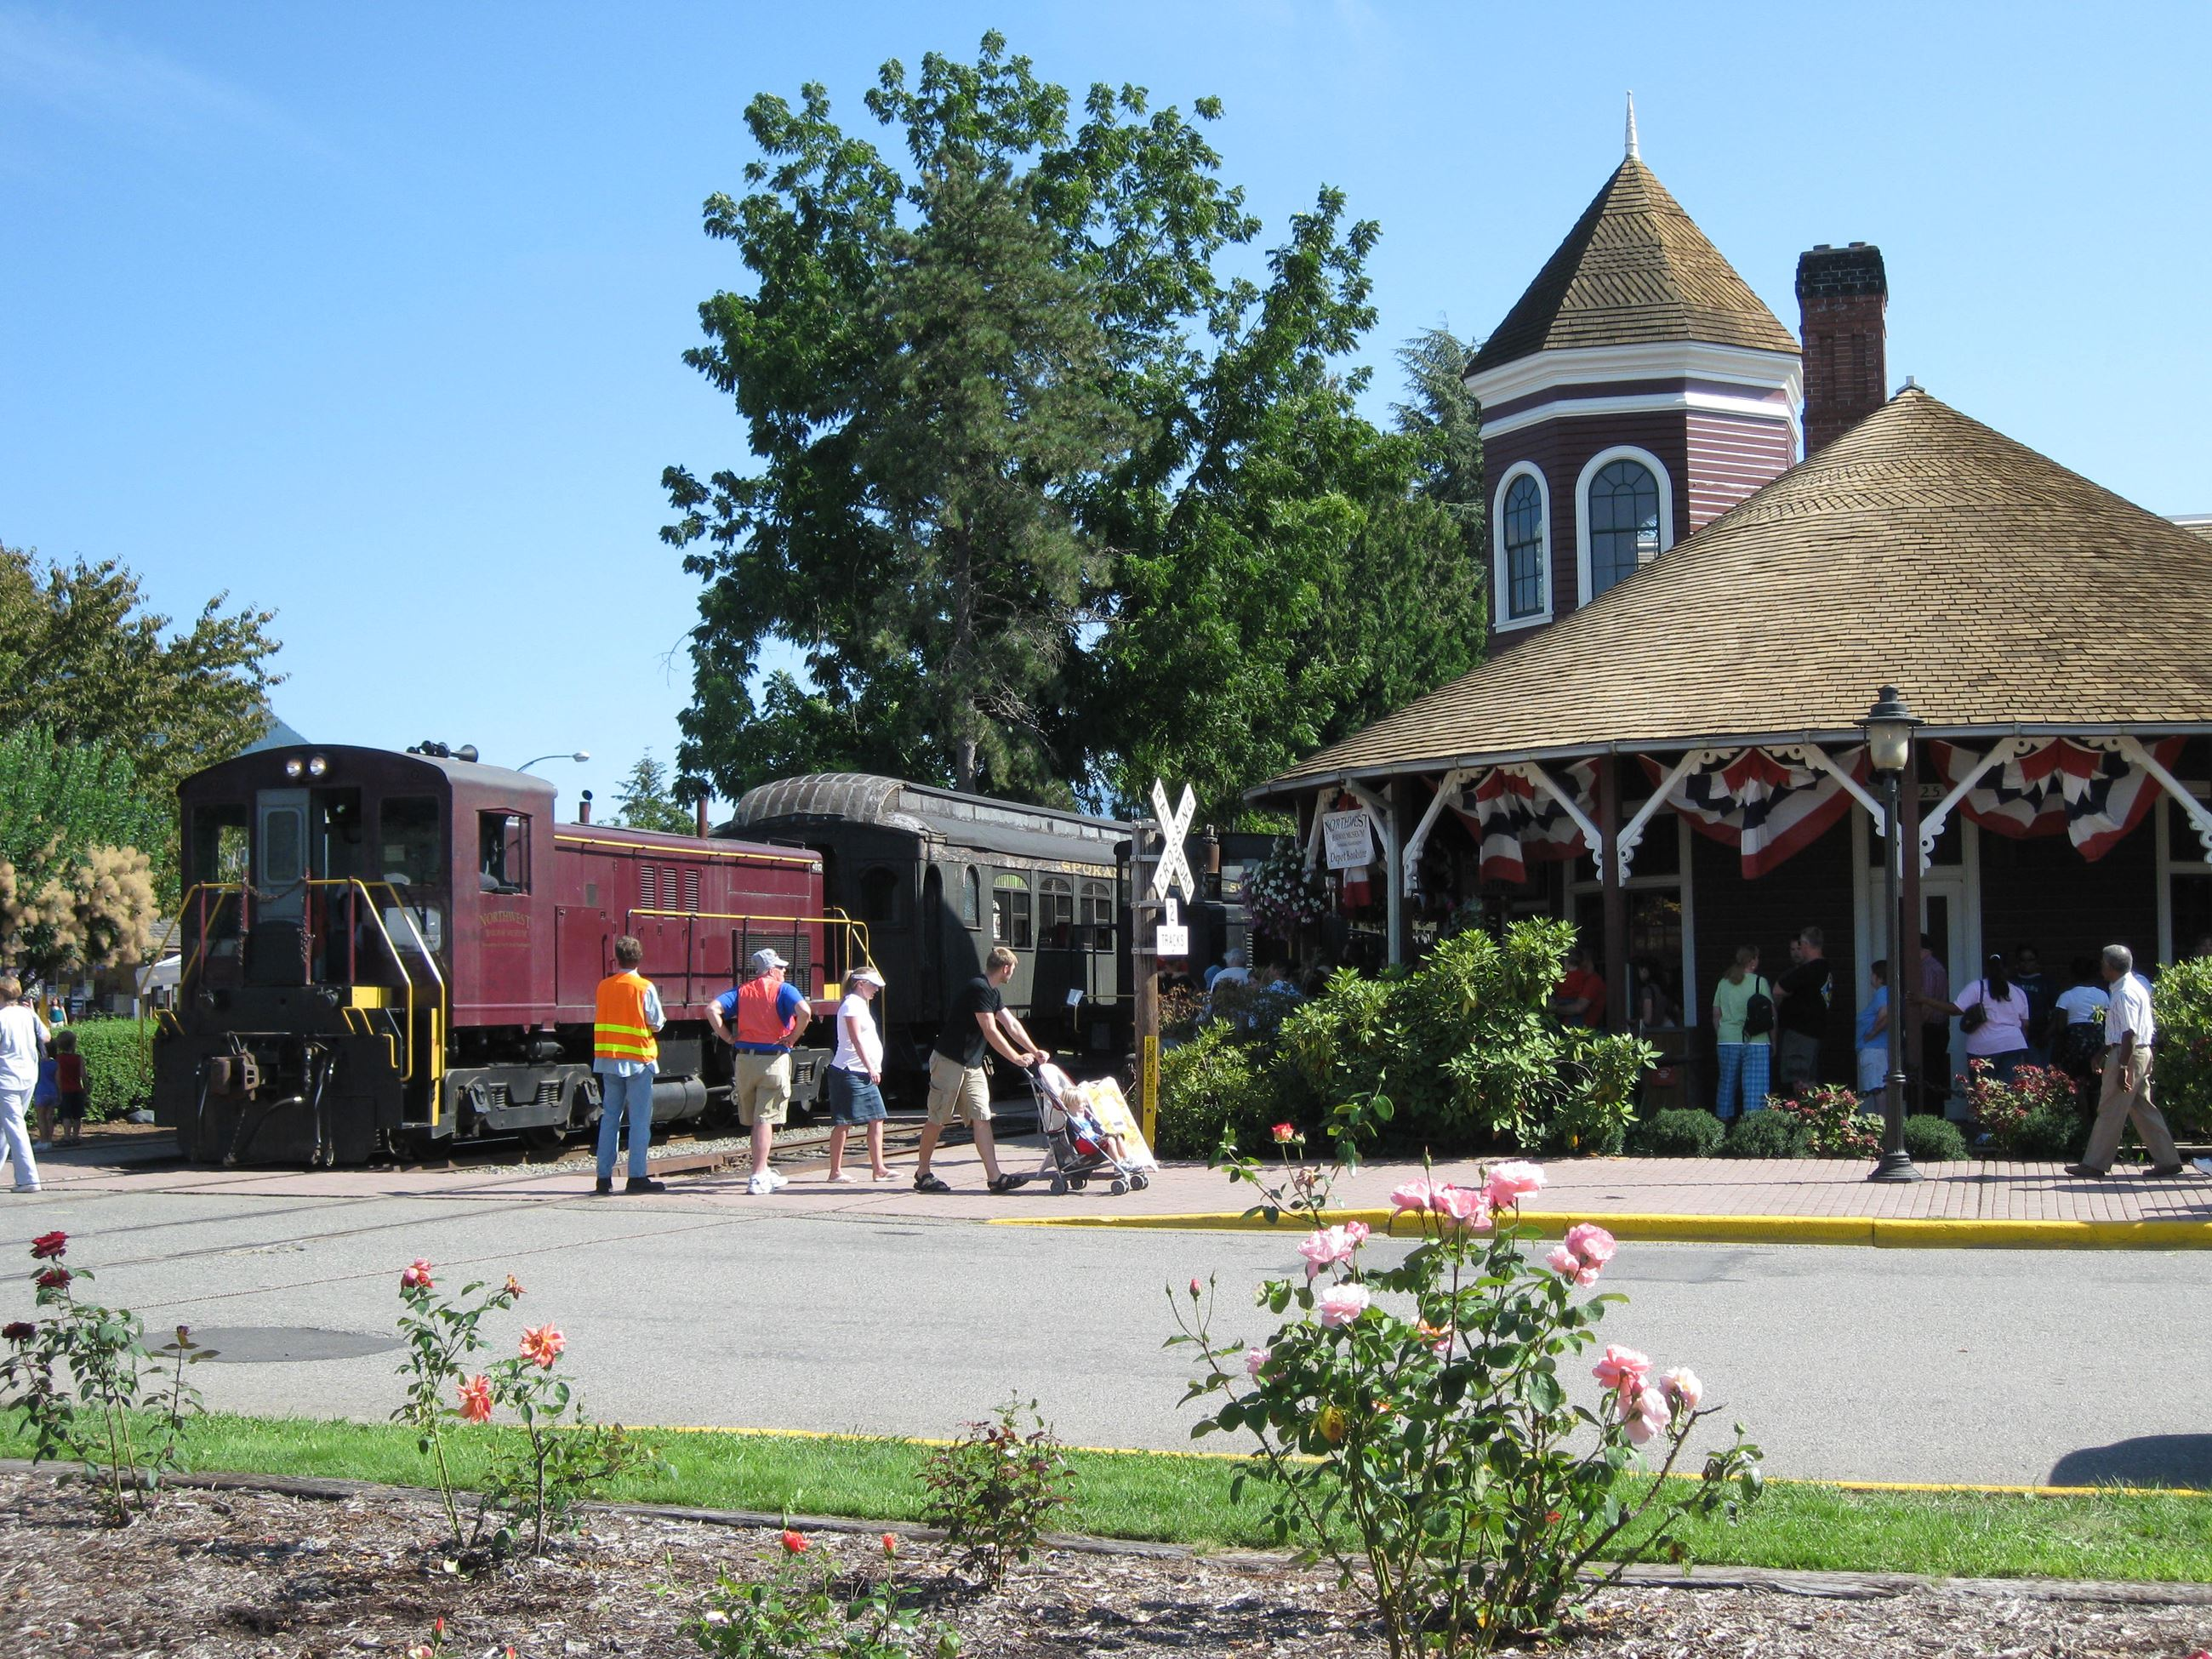 This is a picture of the Historic Snoqualmie Train Depot with the depot, a train, and several people